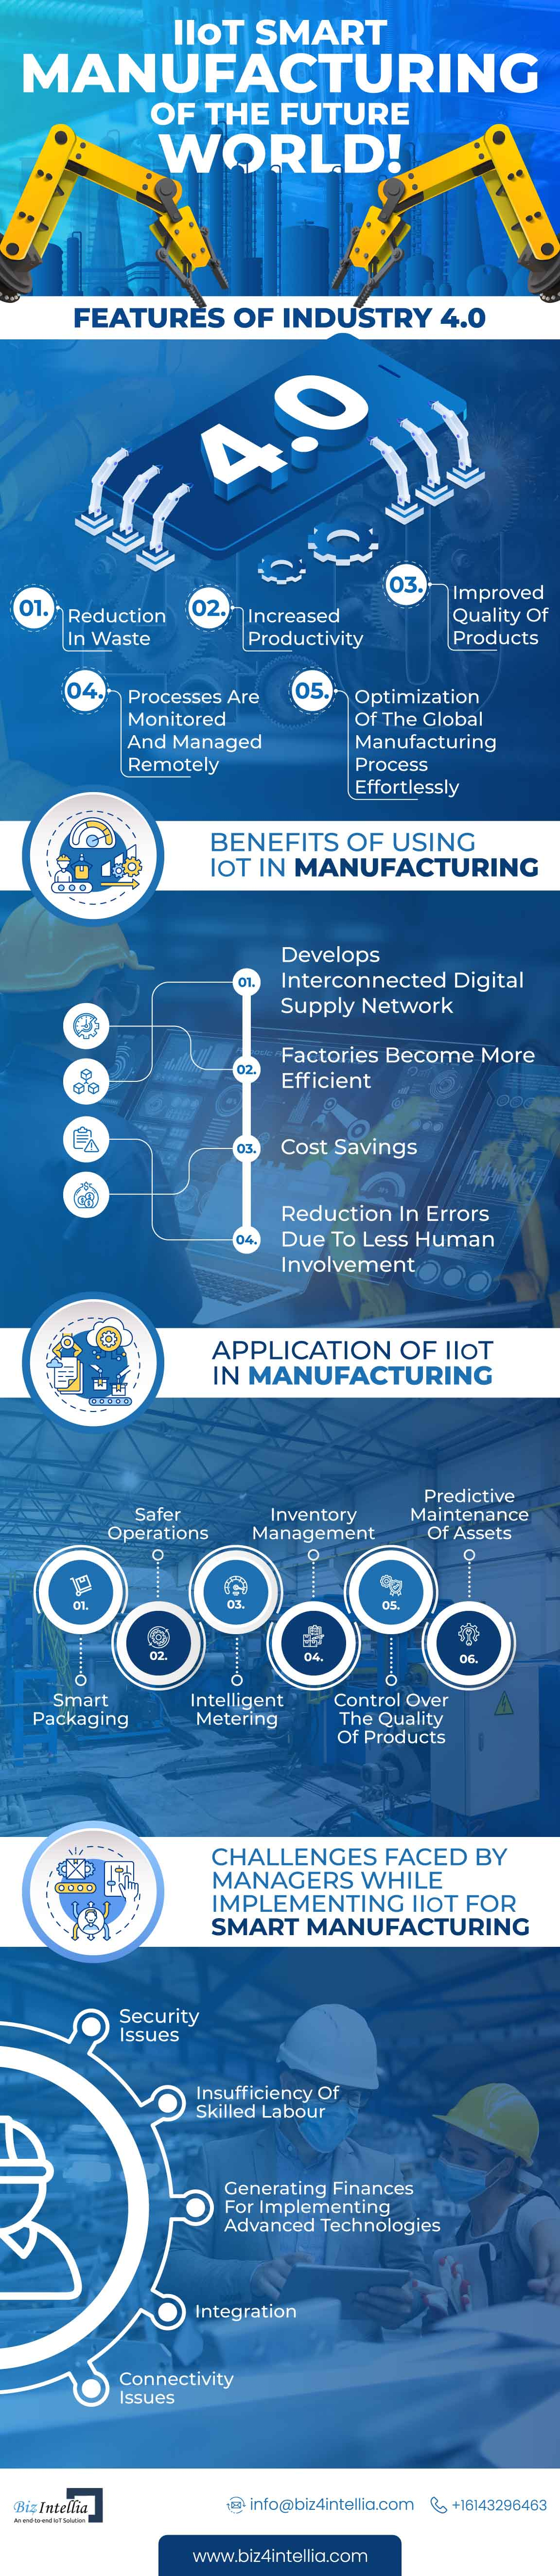 iiot-smart-manufacturing-of-the-future-world